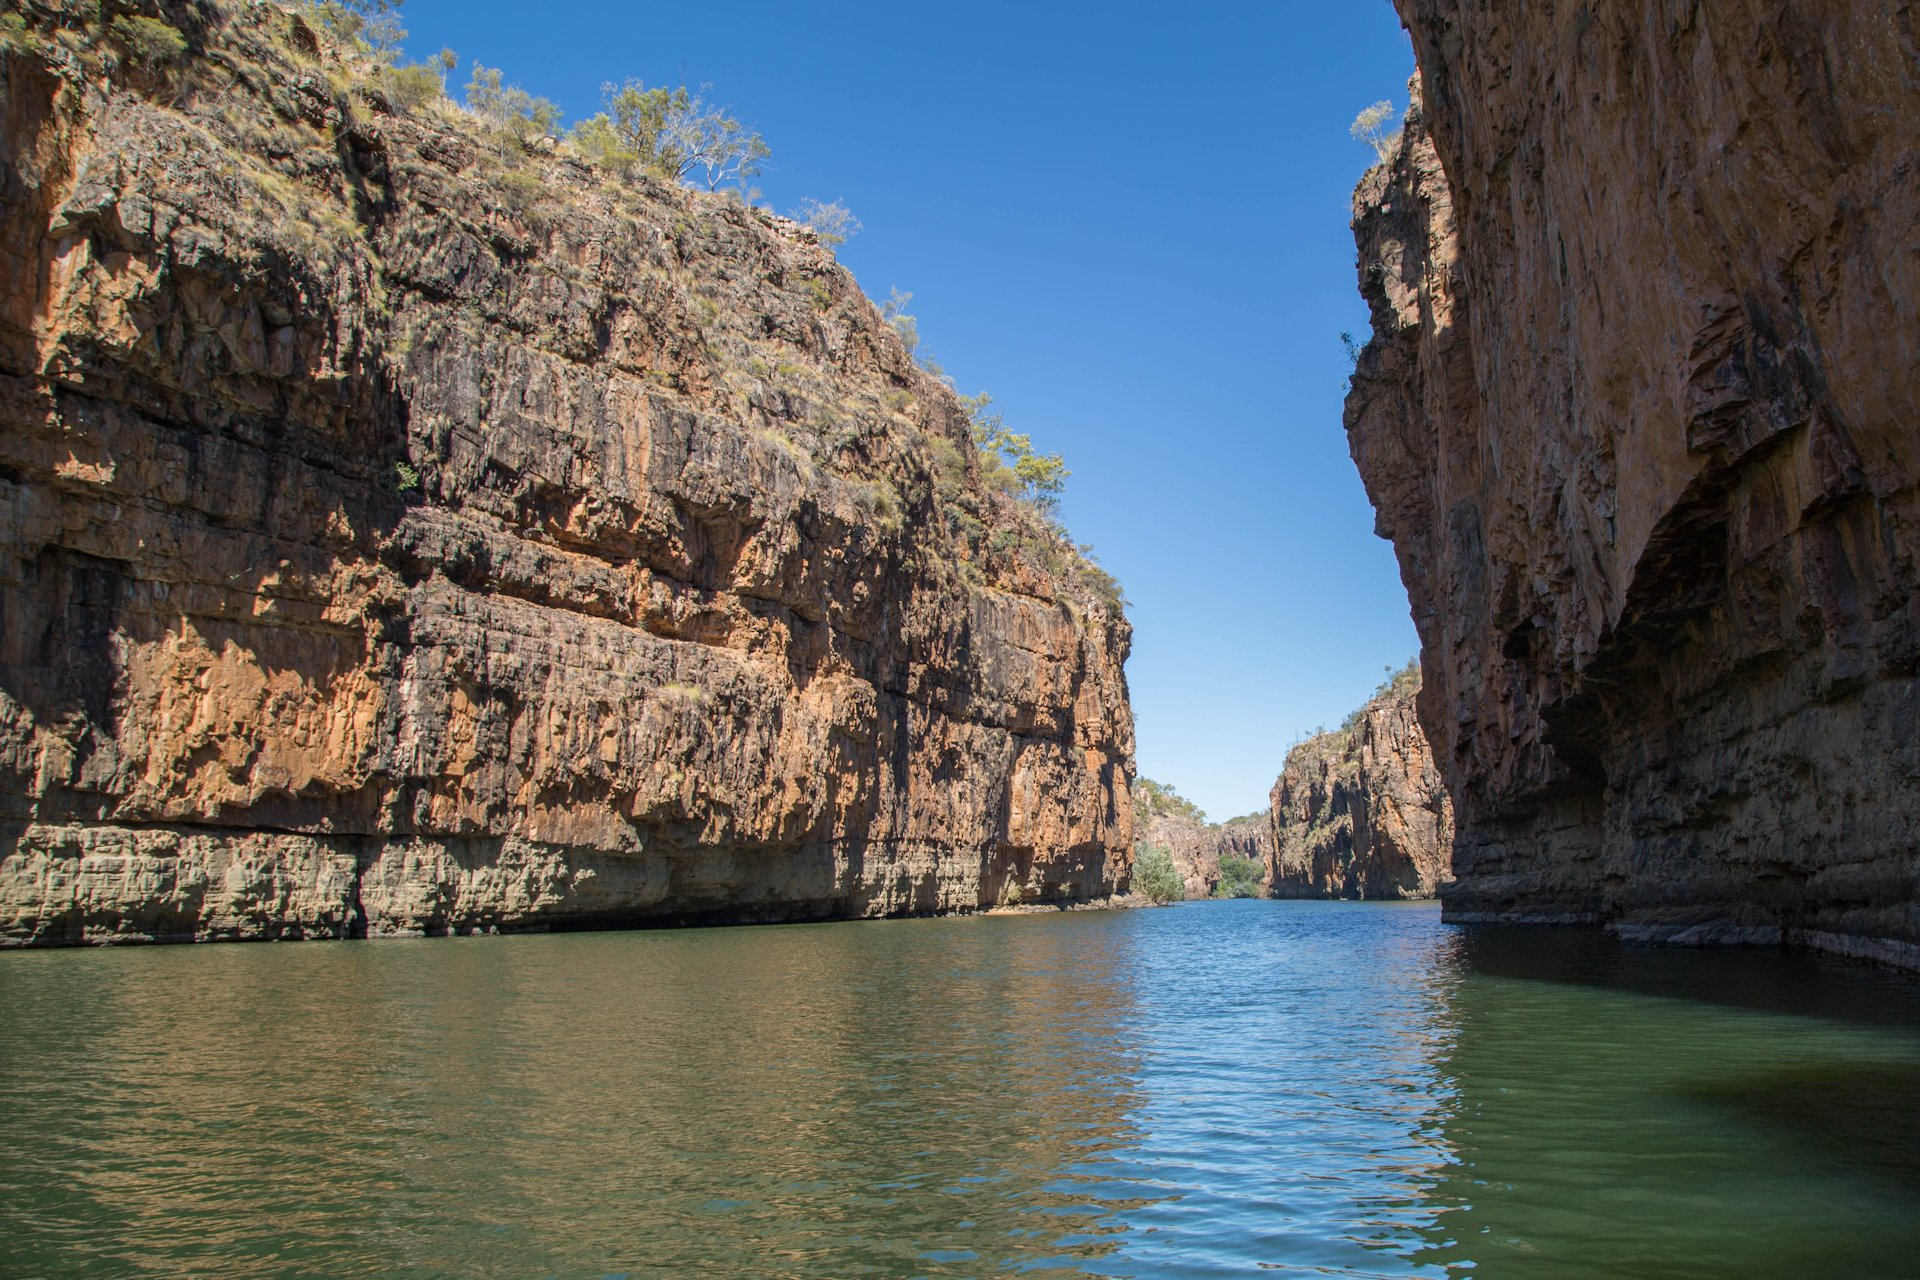 Katherine River flowing through the Gorge, Nitmiluk NP